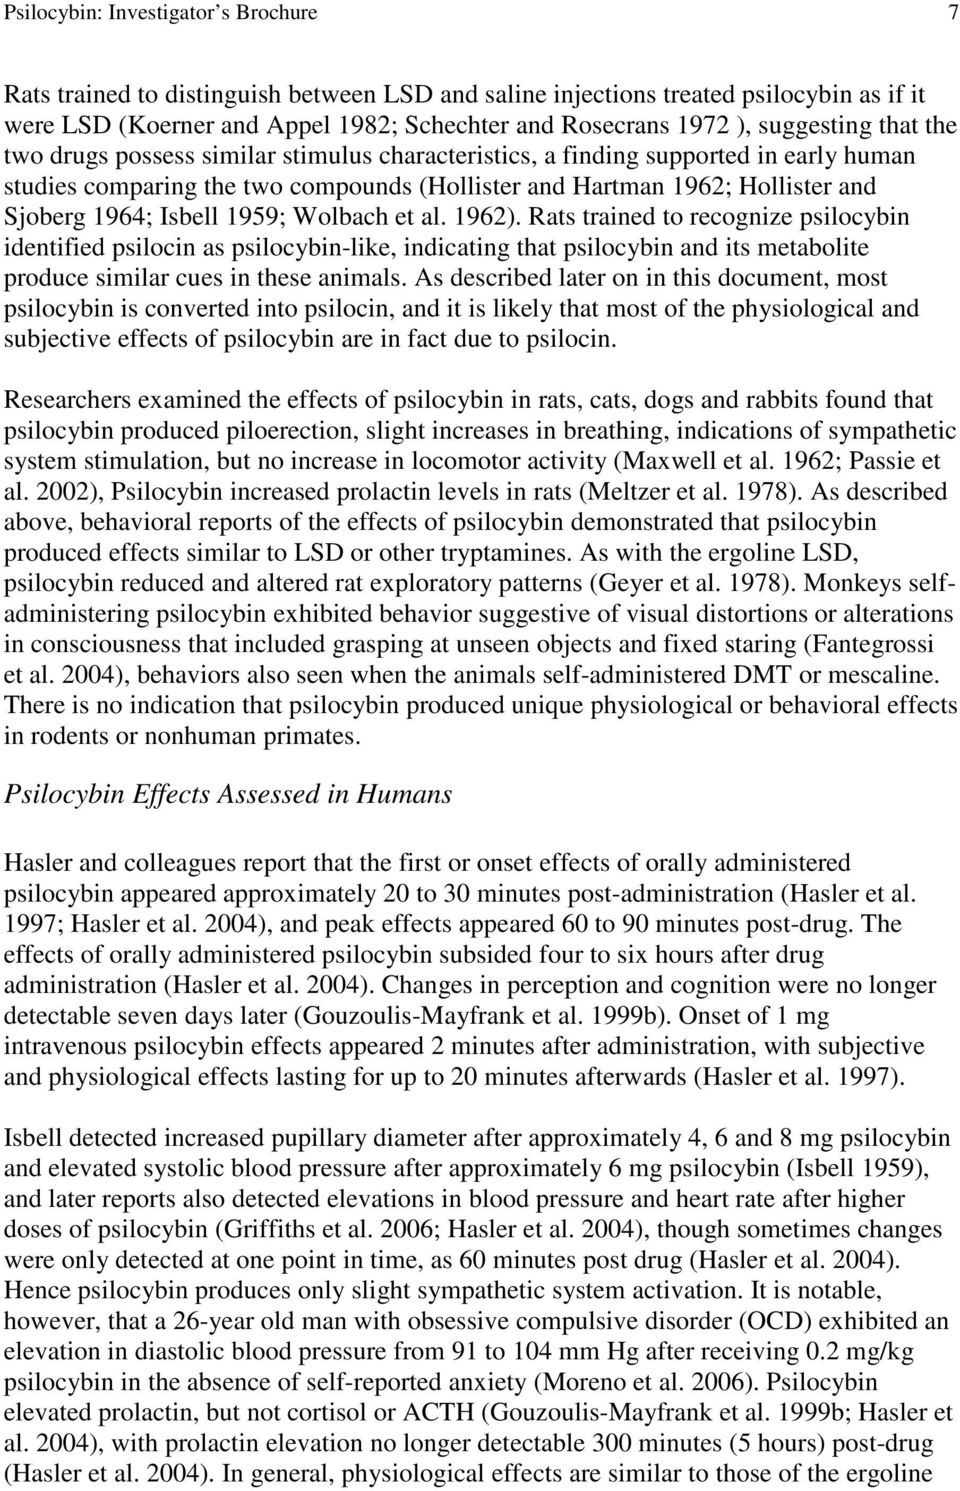 Isbell 1959; Wolbach et al. 1962). Rats trained to recognize psilocybin identified psilocin as psilocybin-like, indicating that psilocybin and its metabolite produce similar cues in these animals.